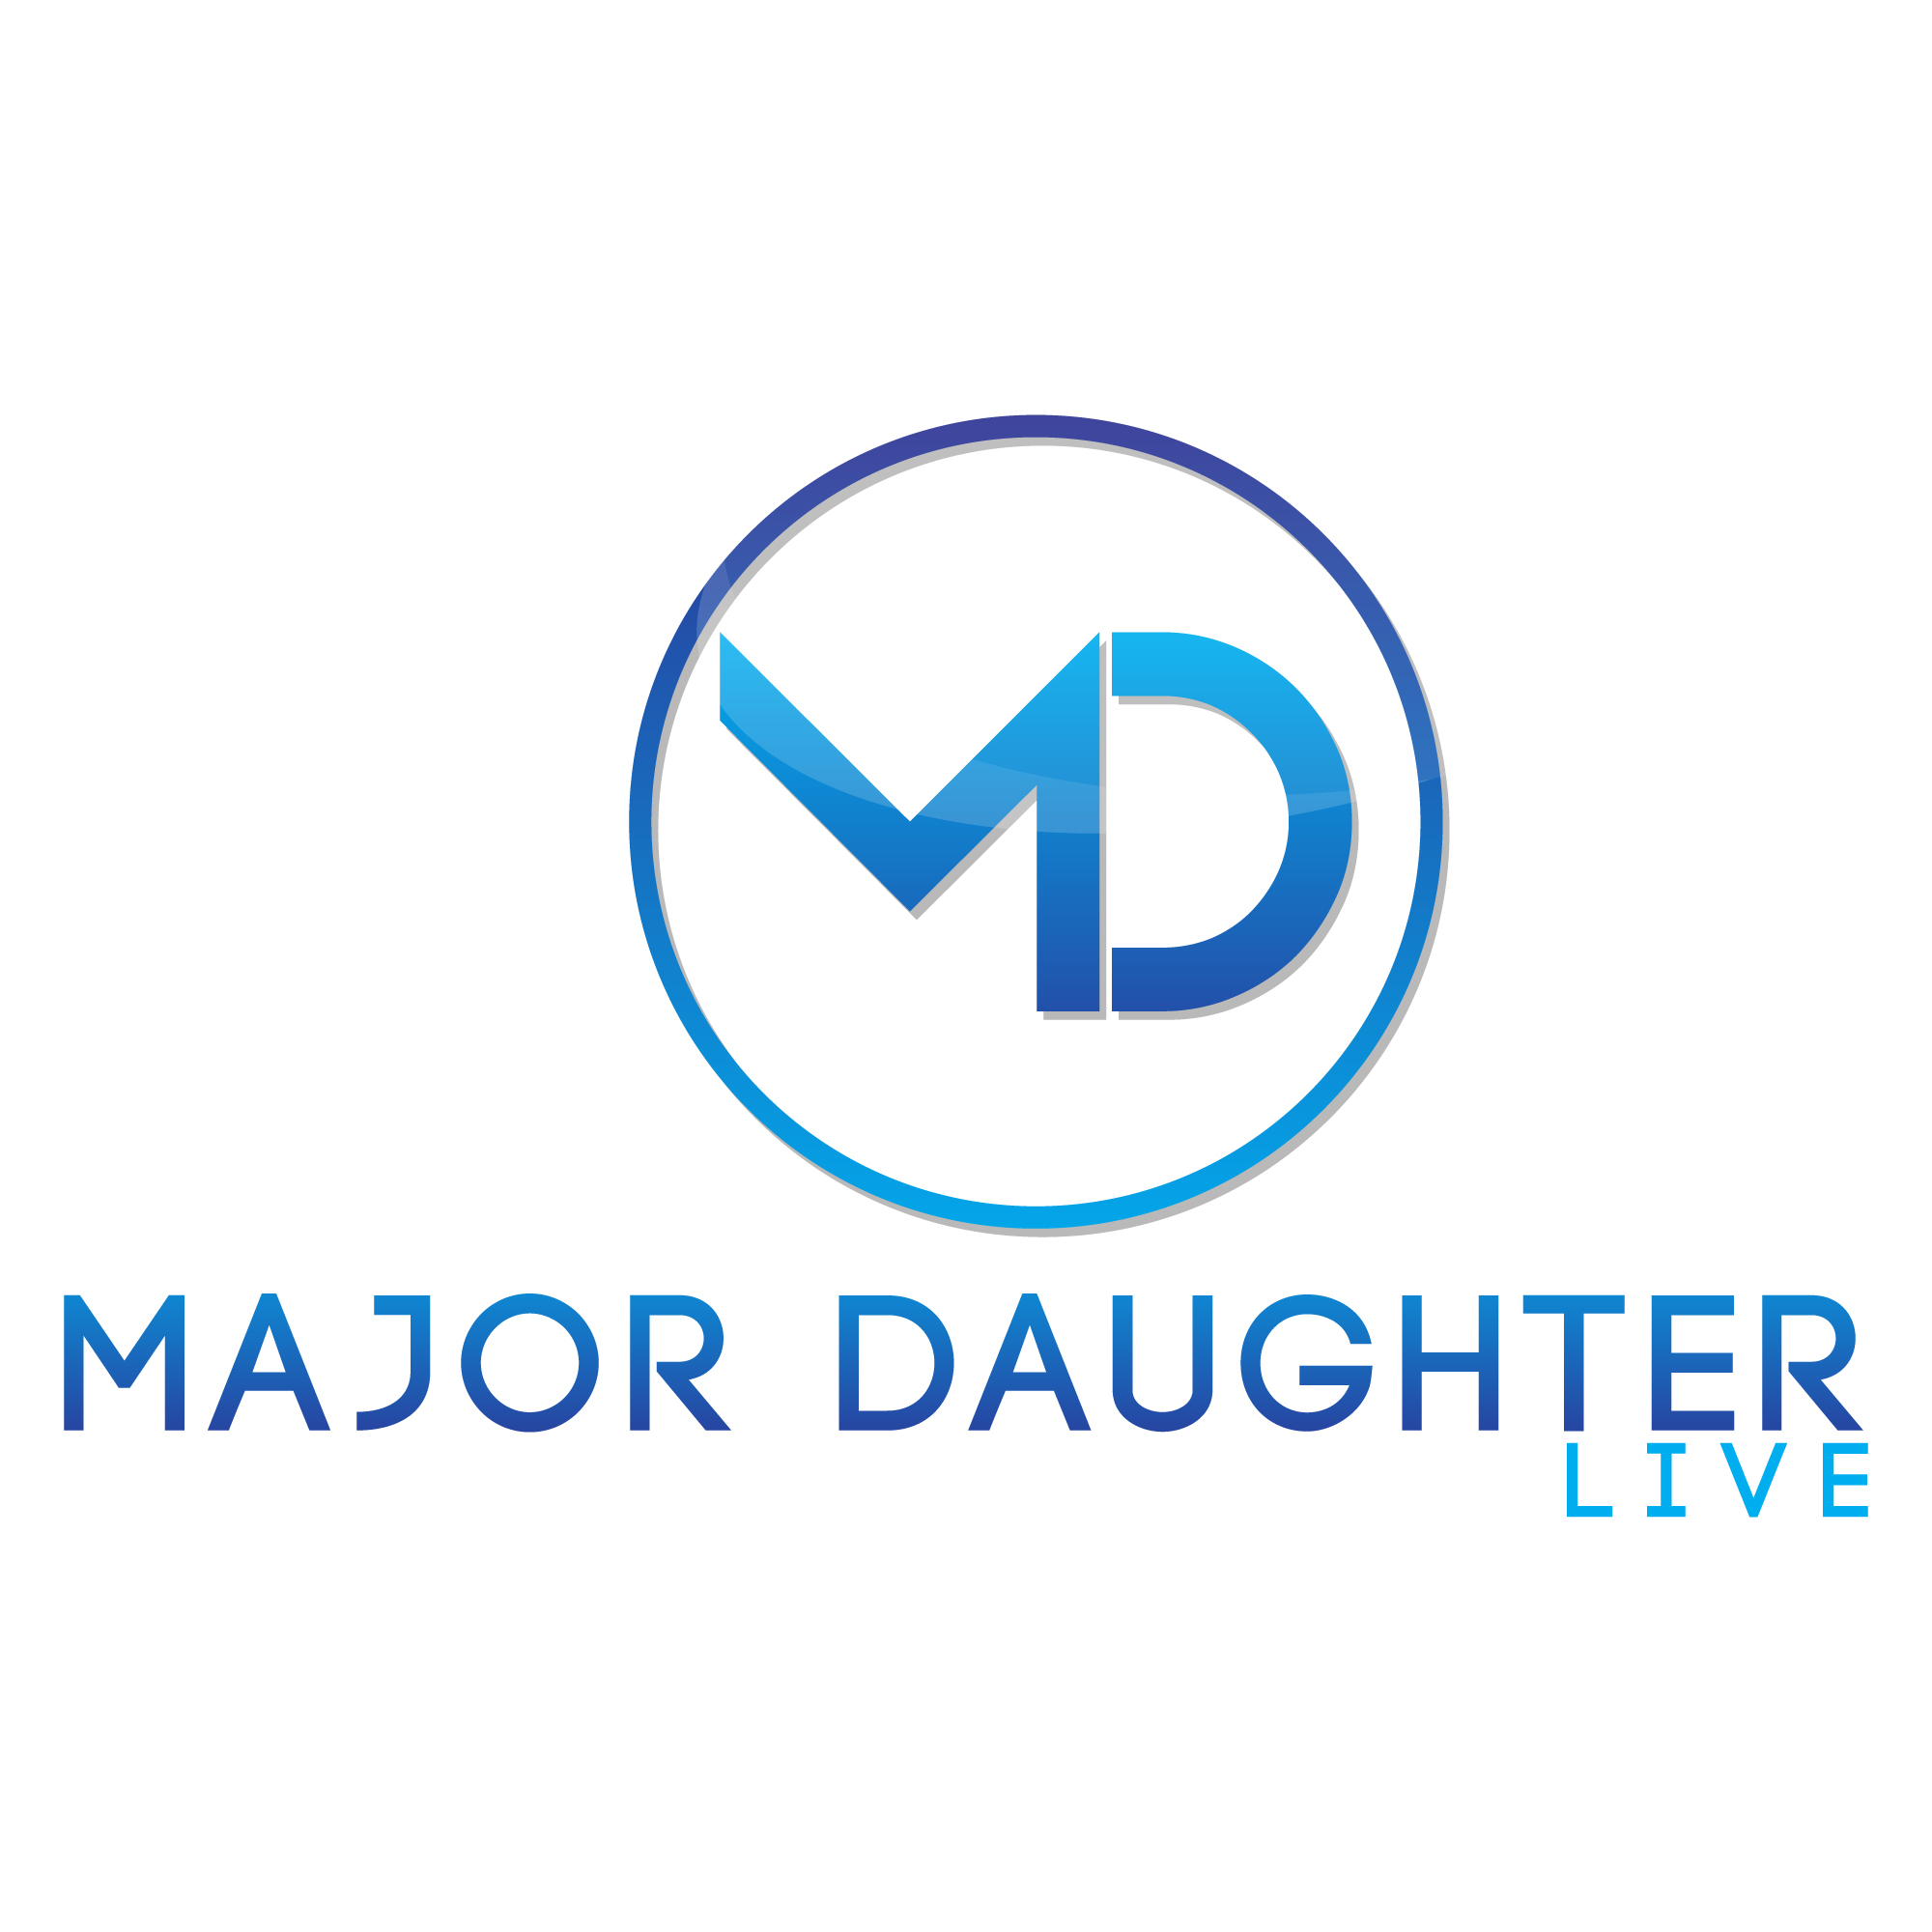 Major Daughter Logo